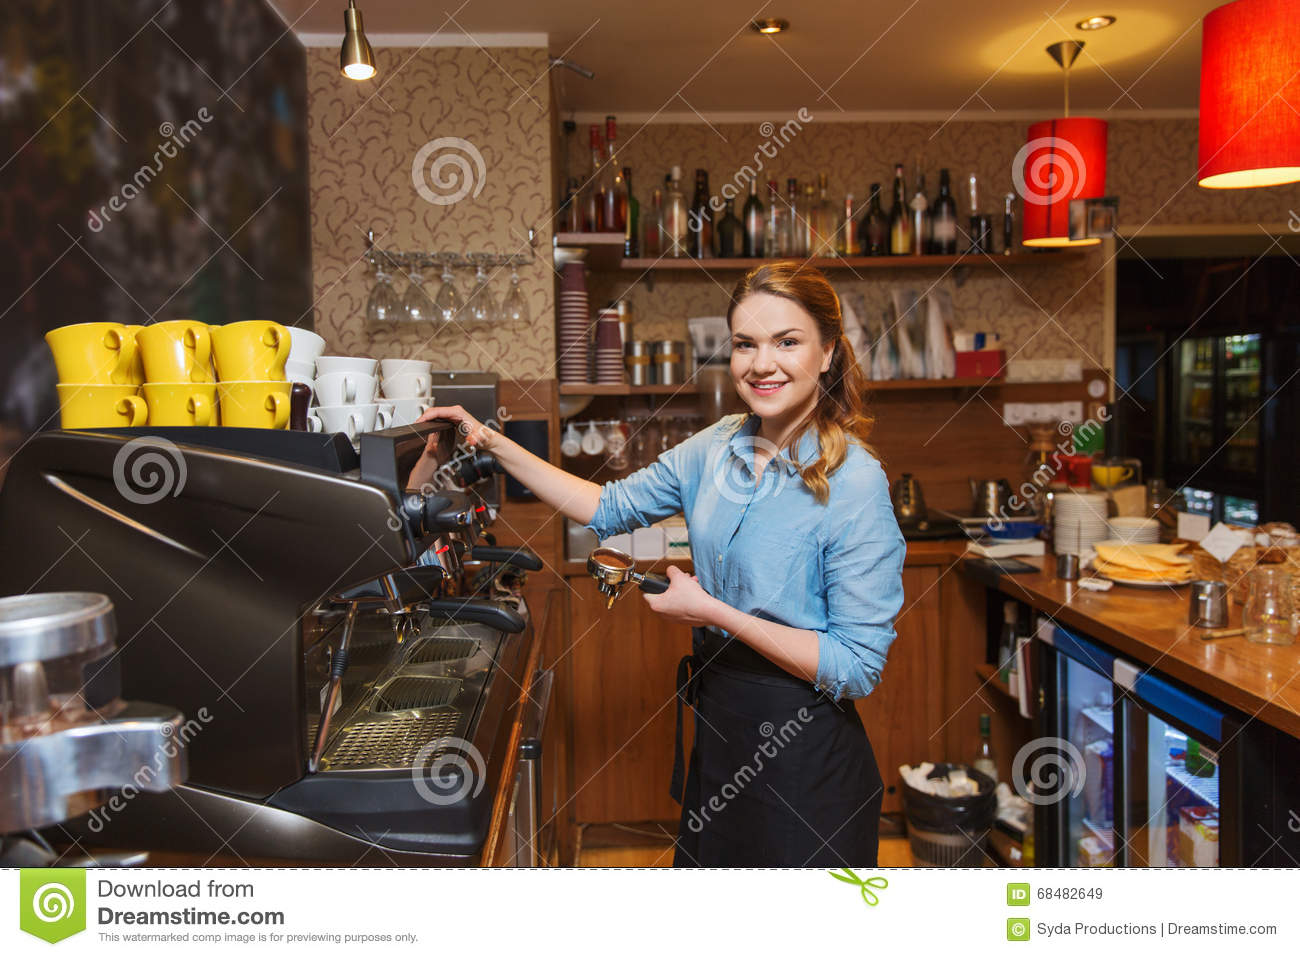 barista woman making coffee by machine at cafe stock image image 68482649. Black Bedroom Furniture Sets. Home Design Ideas